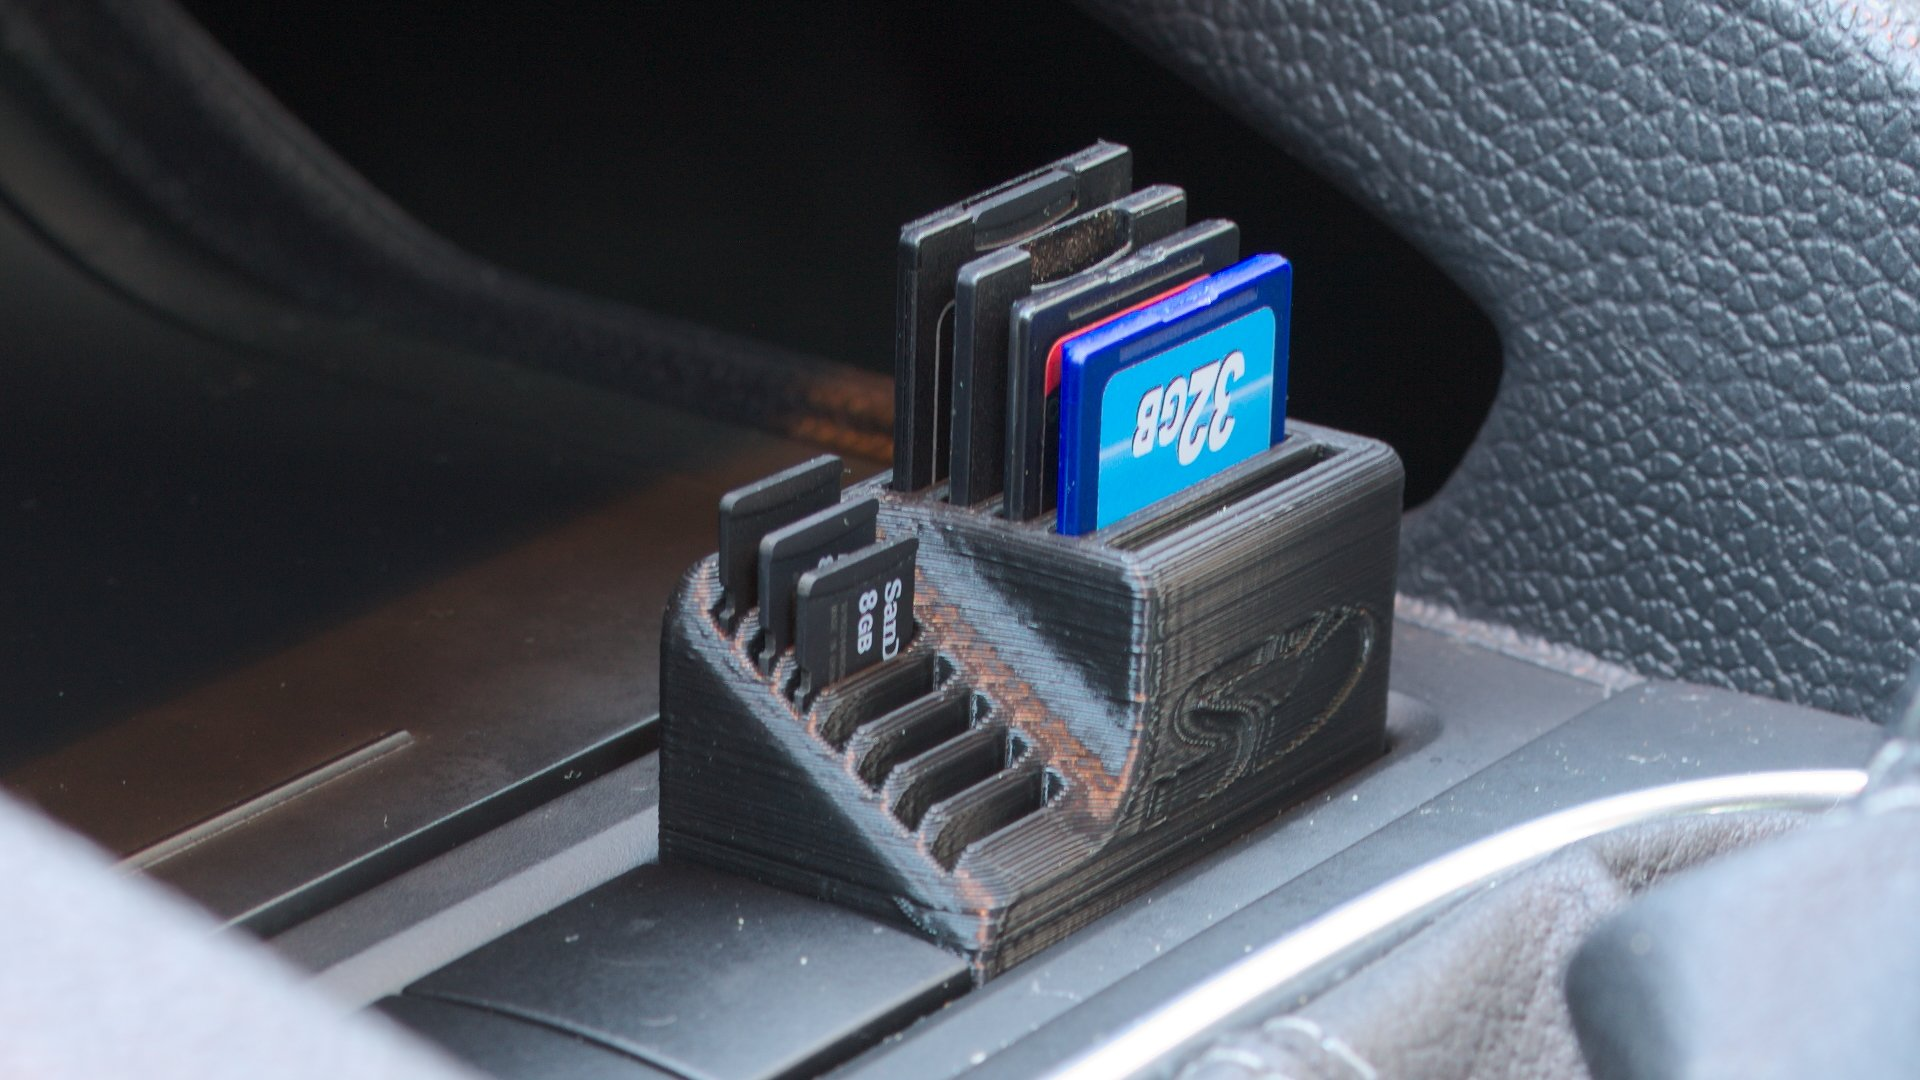 VW SD card holder